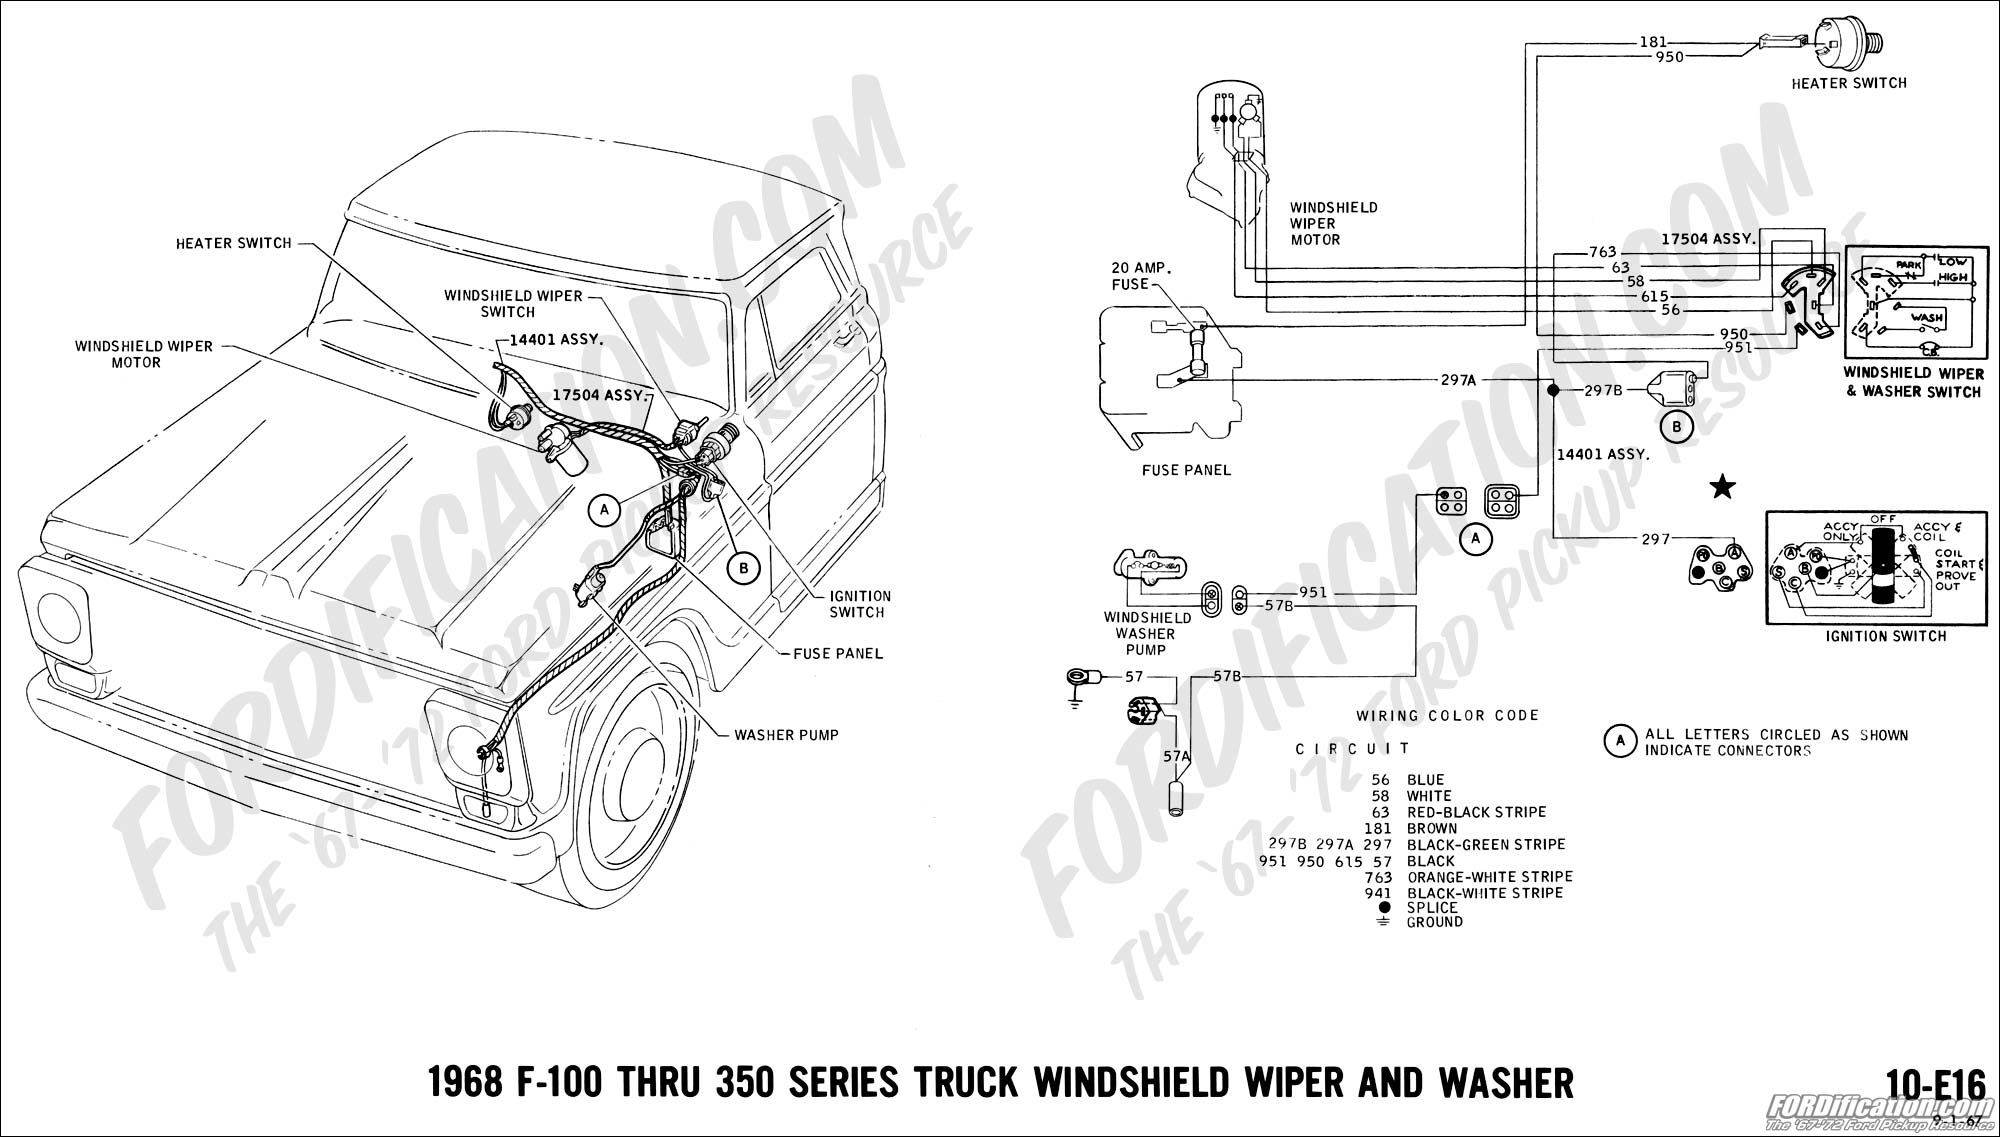 Wiring Harness Drawing For 67 Ford F100 Library 70 Chevy C10 Schematic Truck Technical Drawings And Schematics Section H 1966 Diagram Body 1967